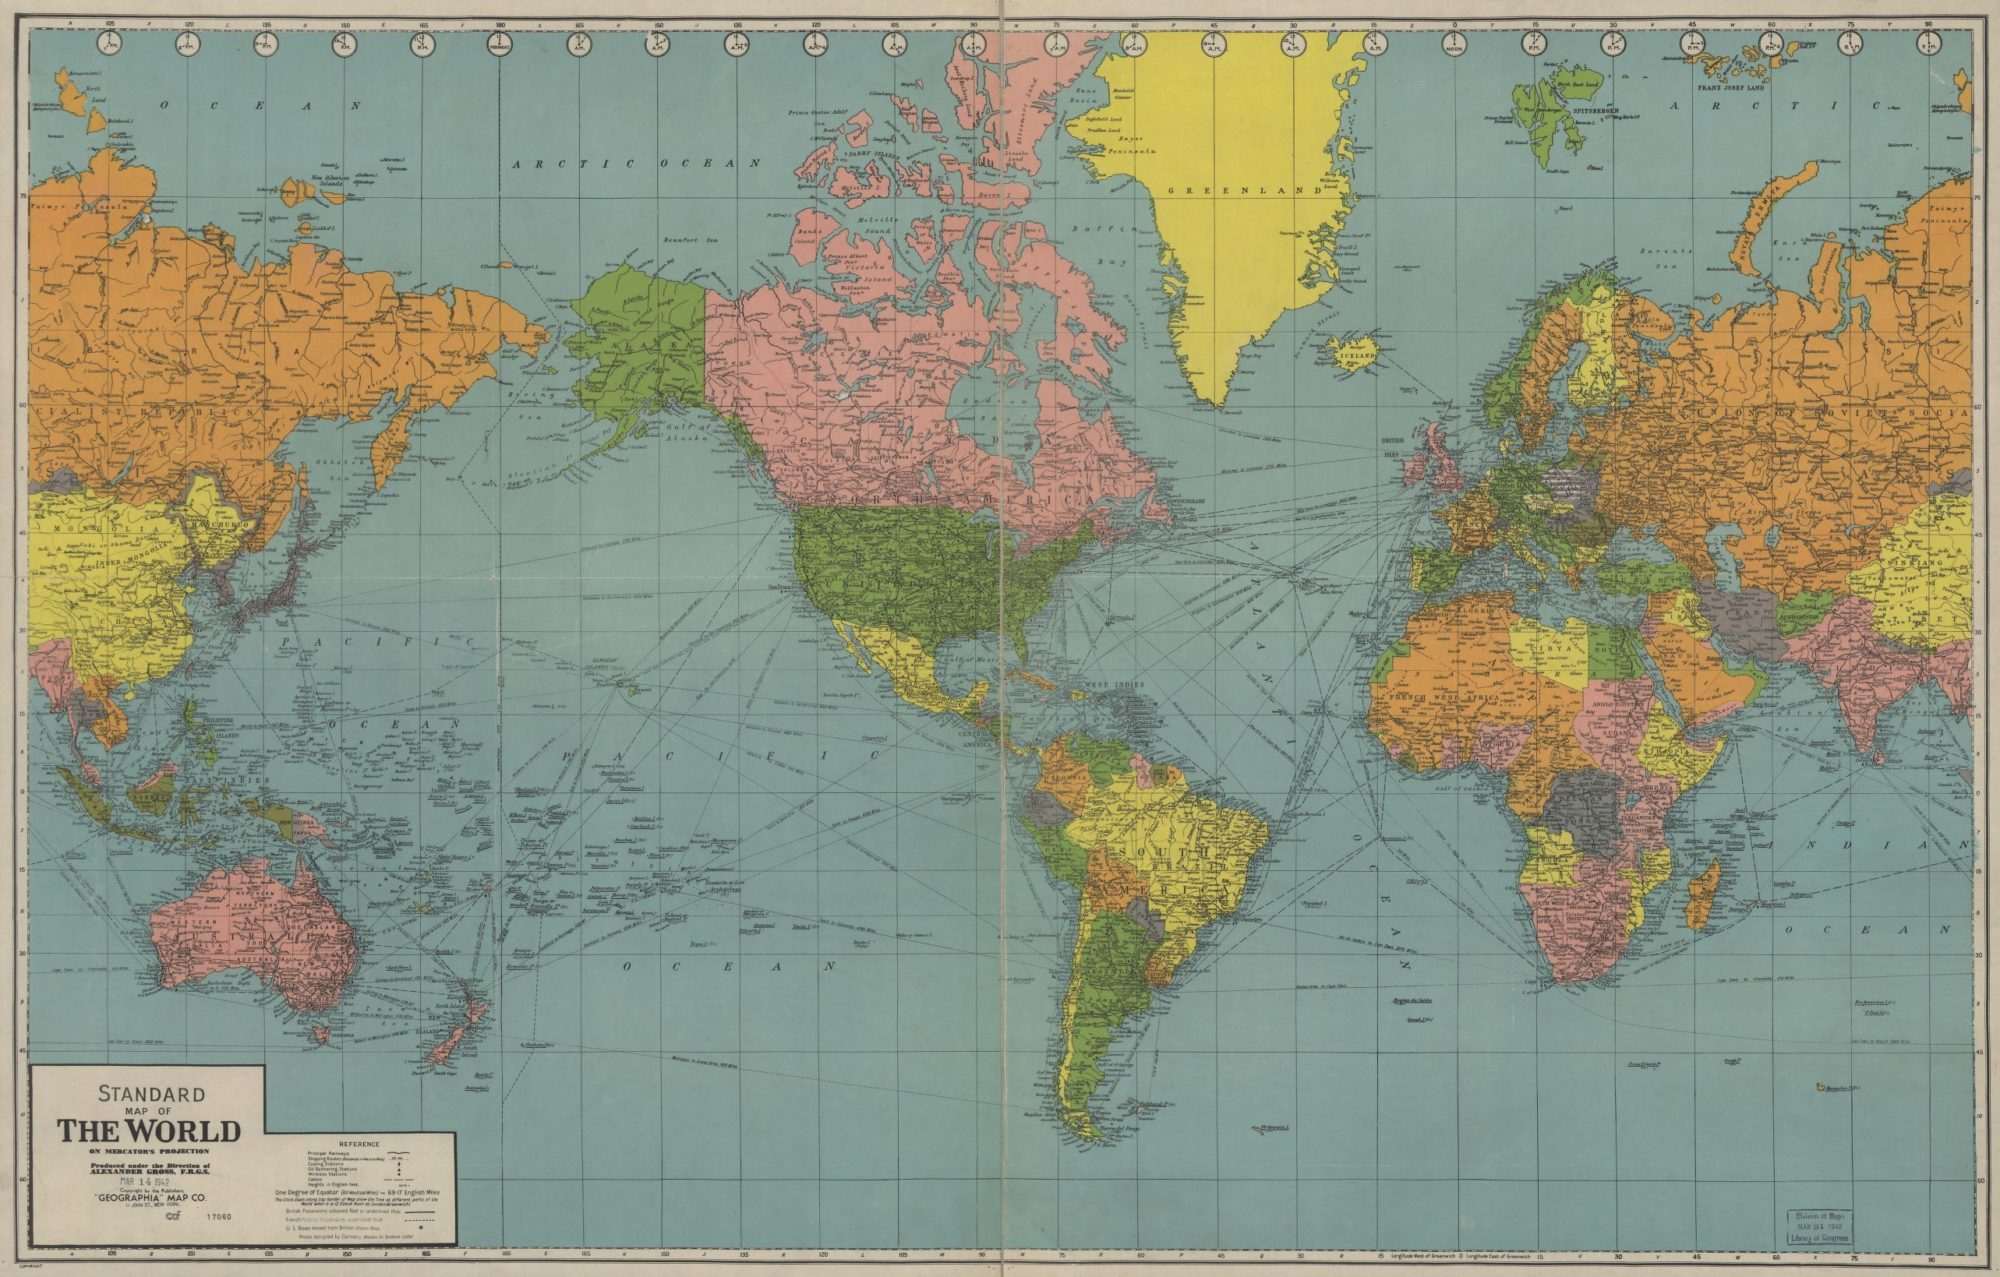 The World Political Map  | 1942 | Large, Printable Downloadable Map